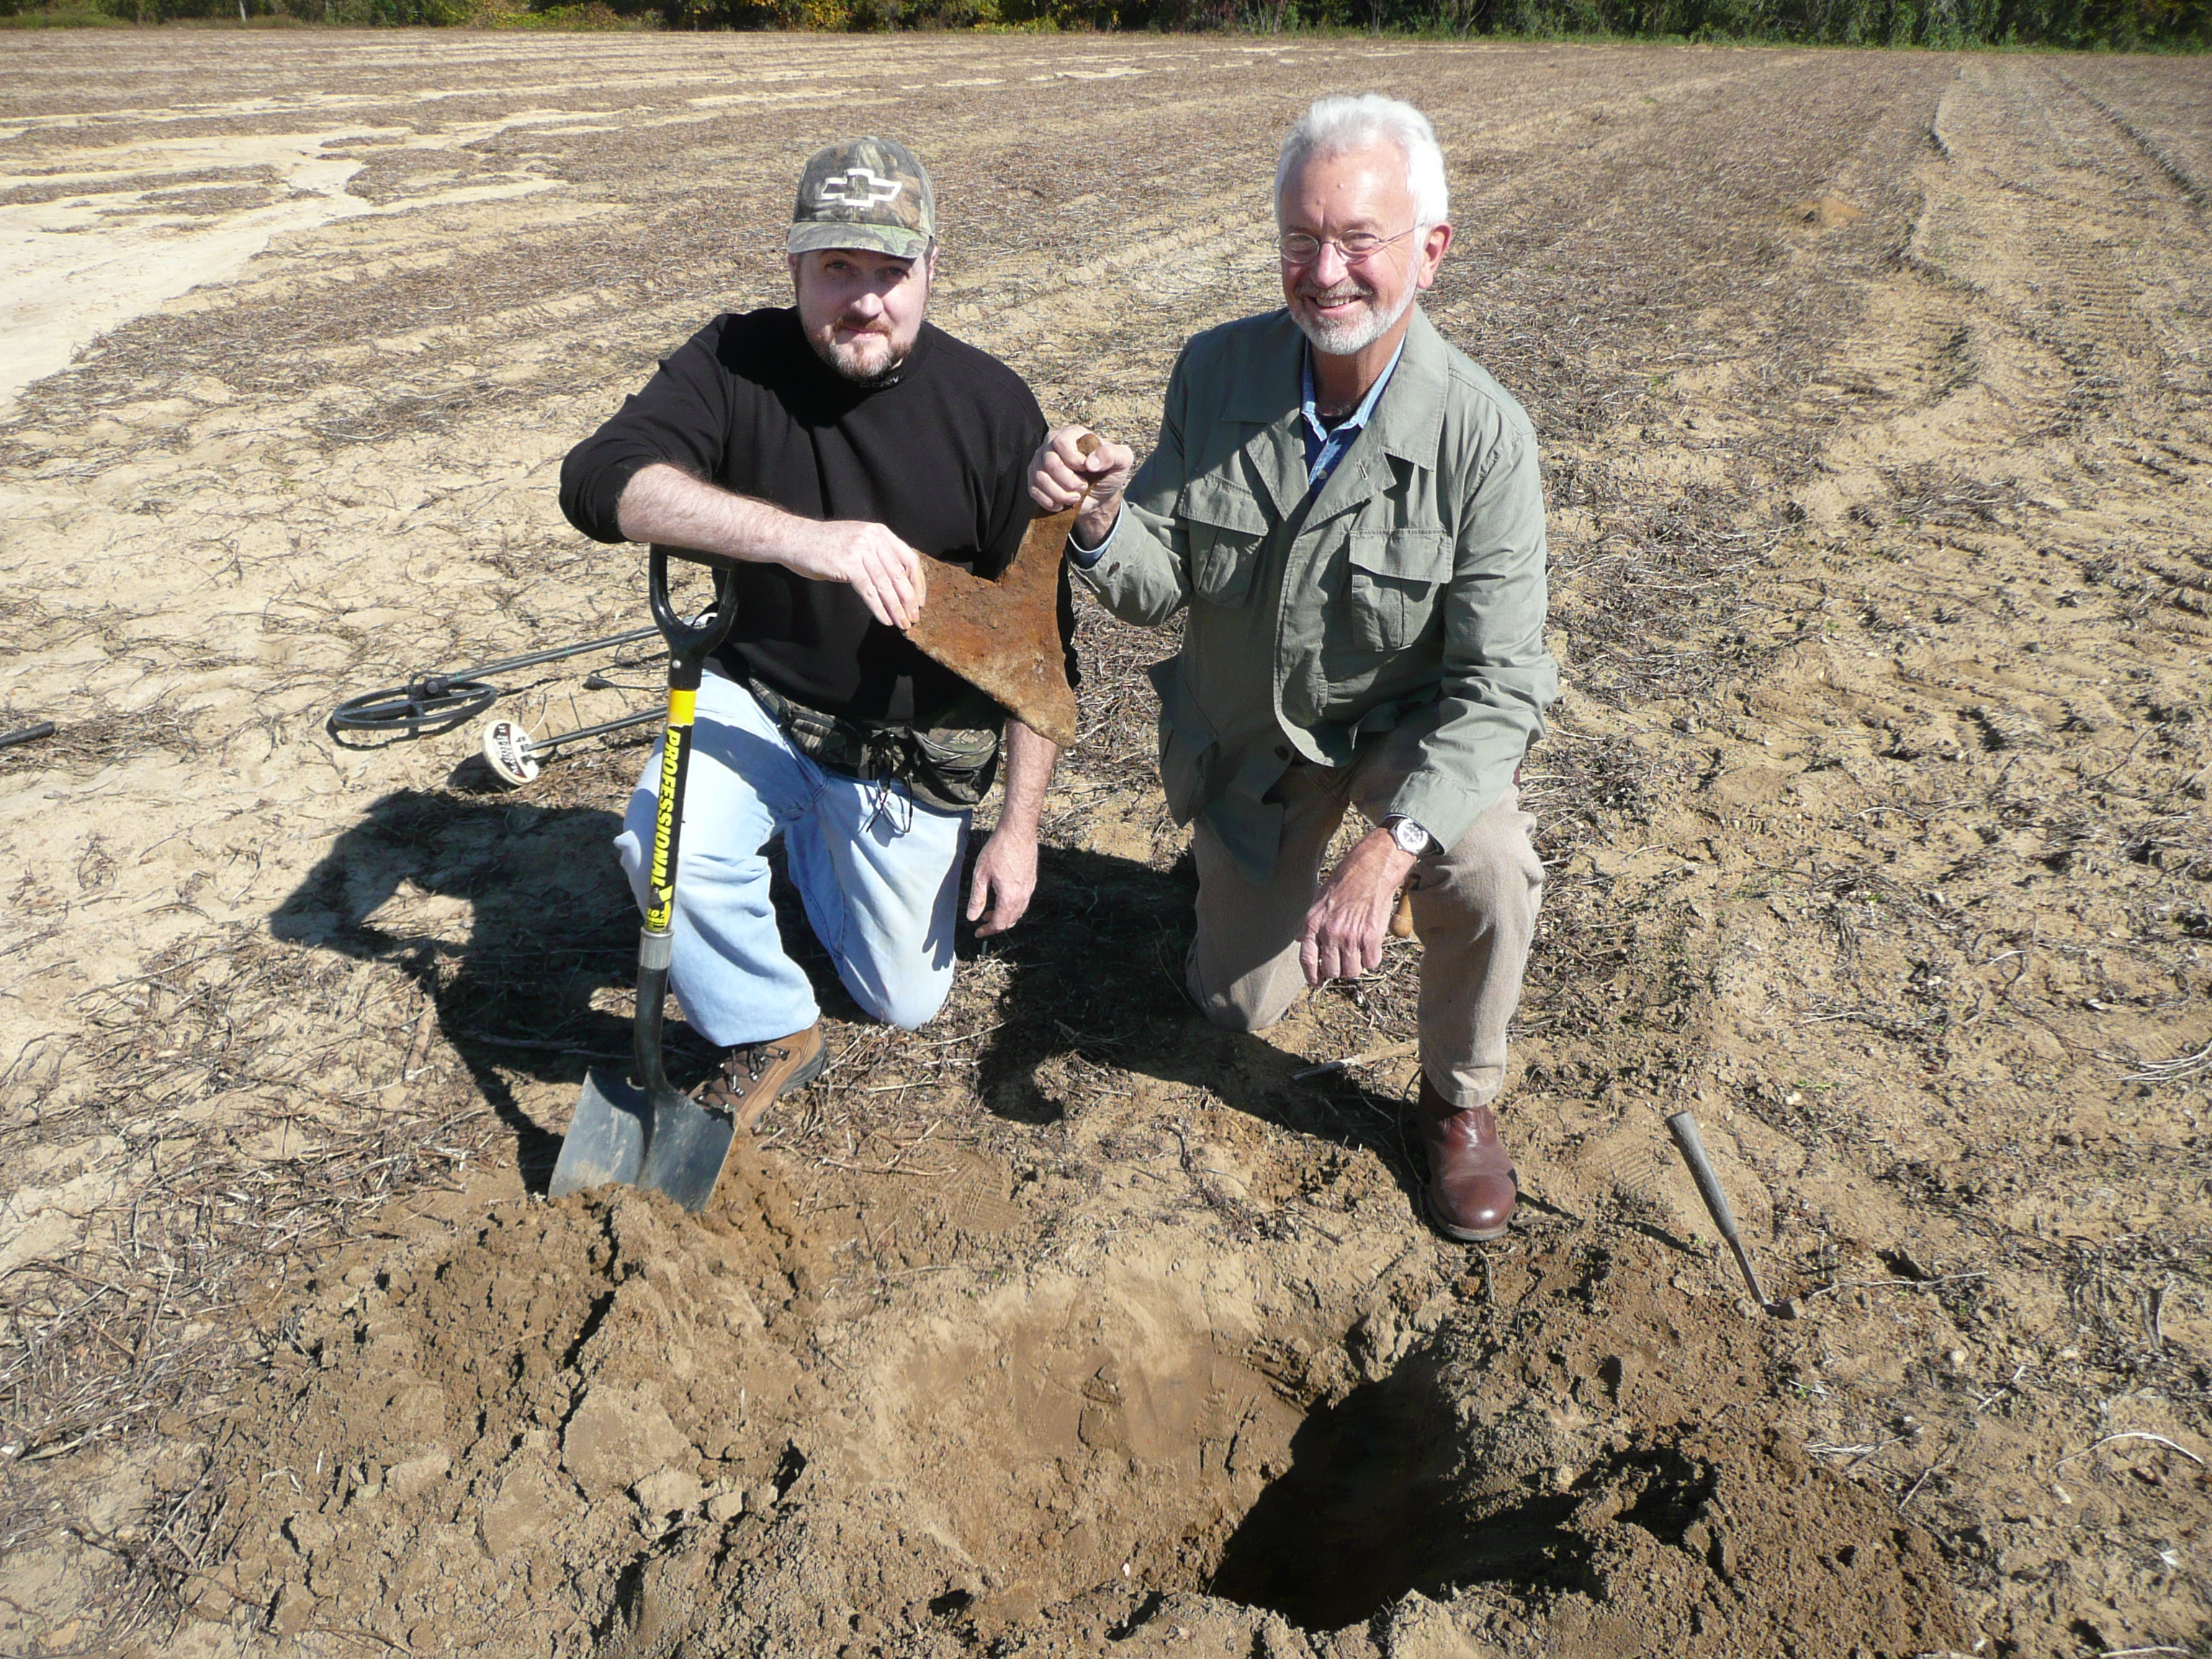 Sean and Barry in the field with a newly-recovered, flight oriented plow point